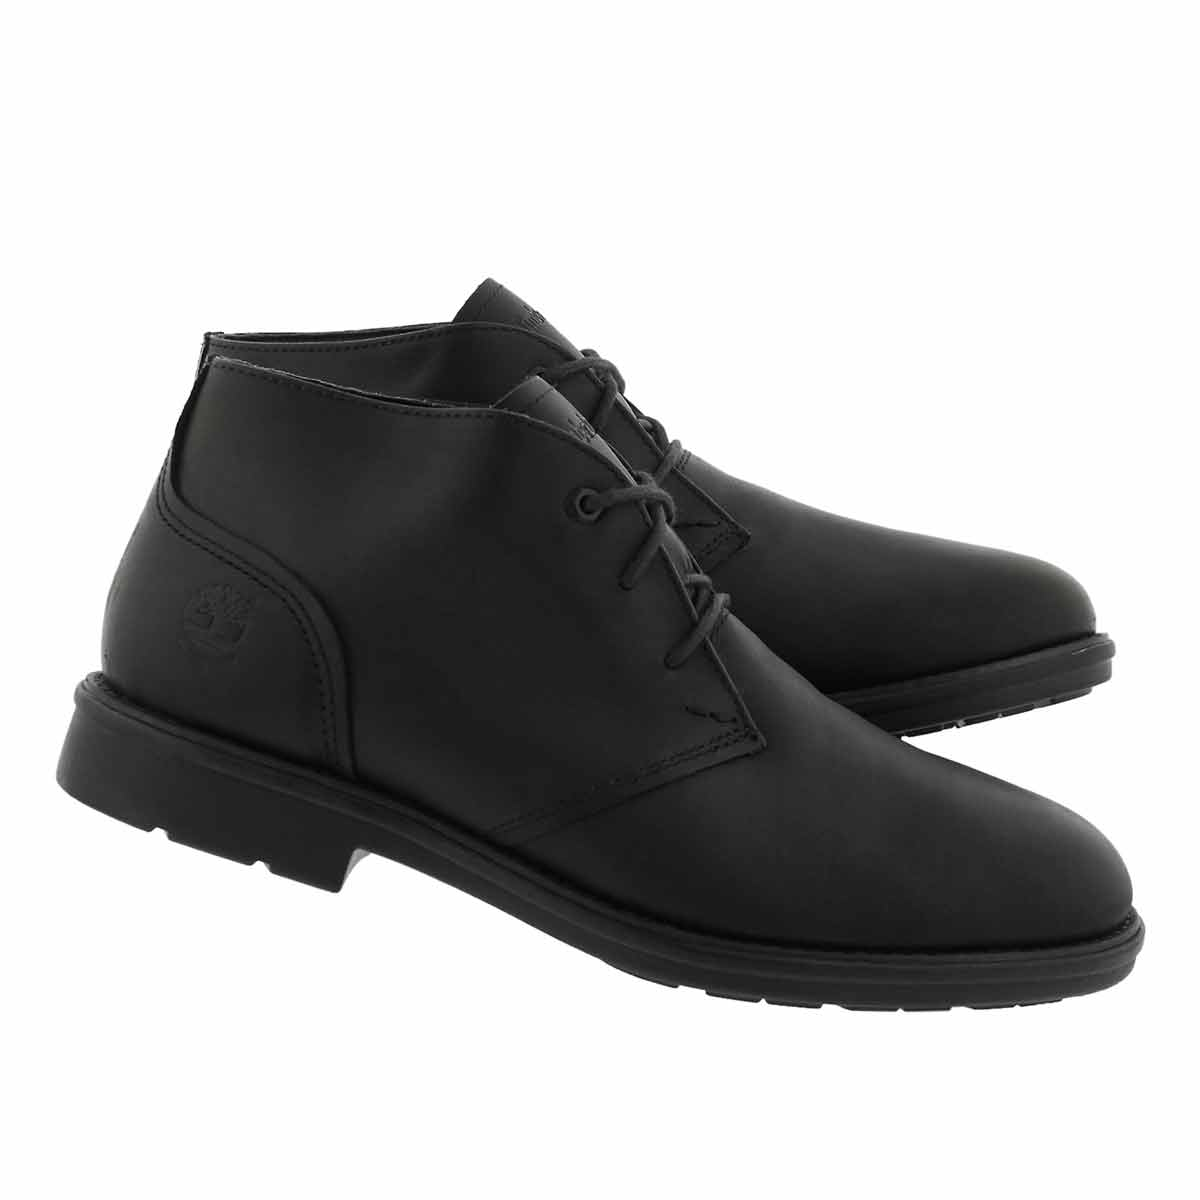 Mns Carter Notch blk chukka boot- wide